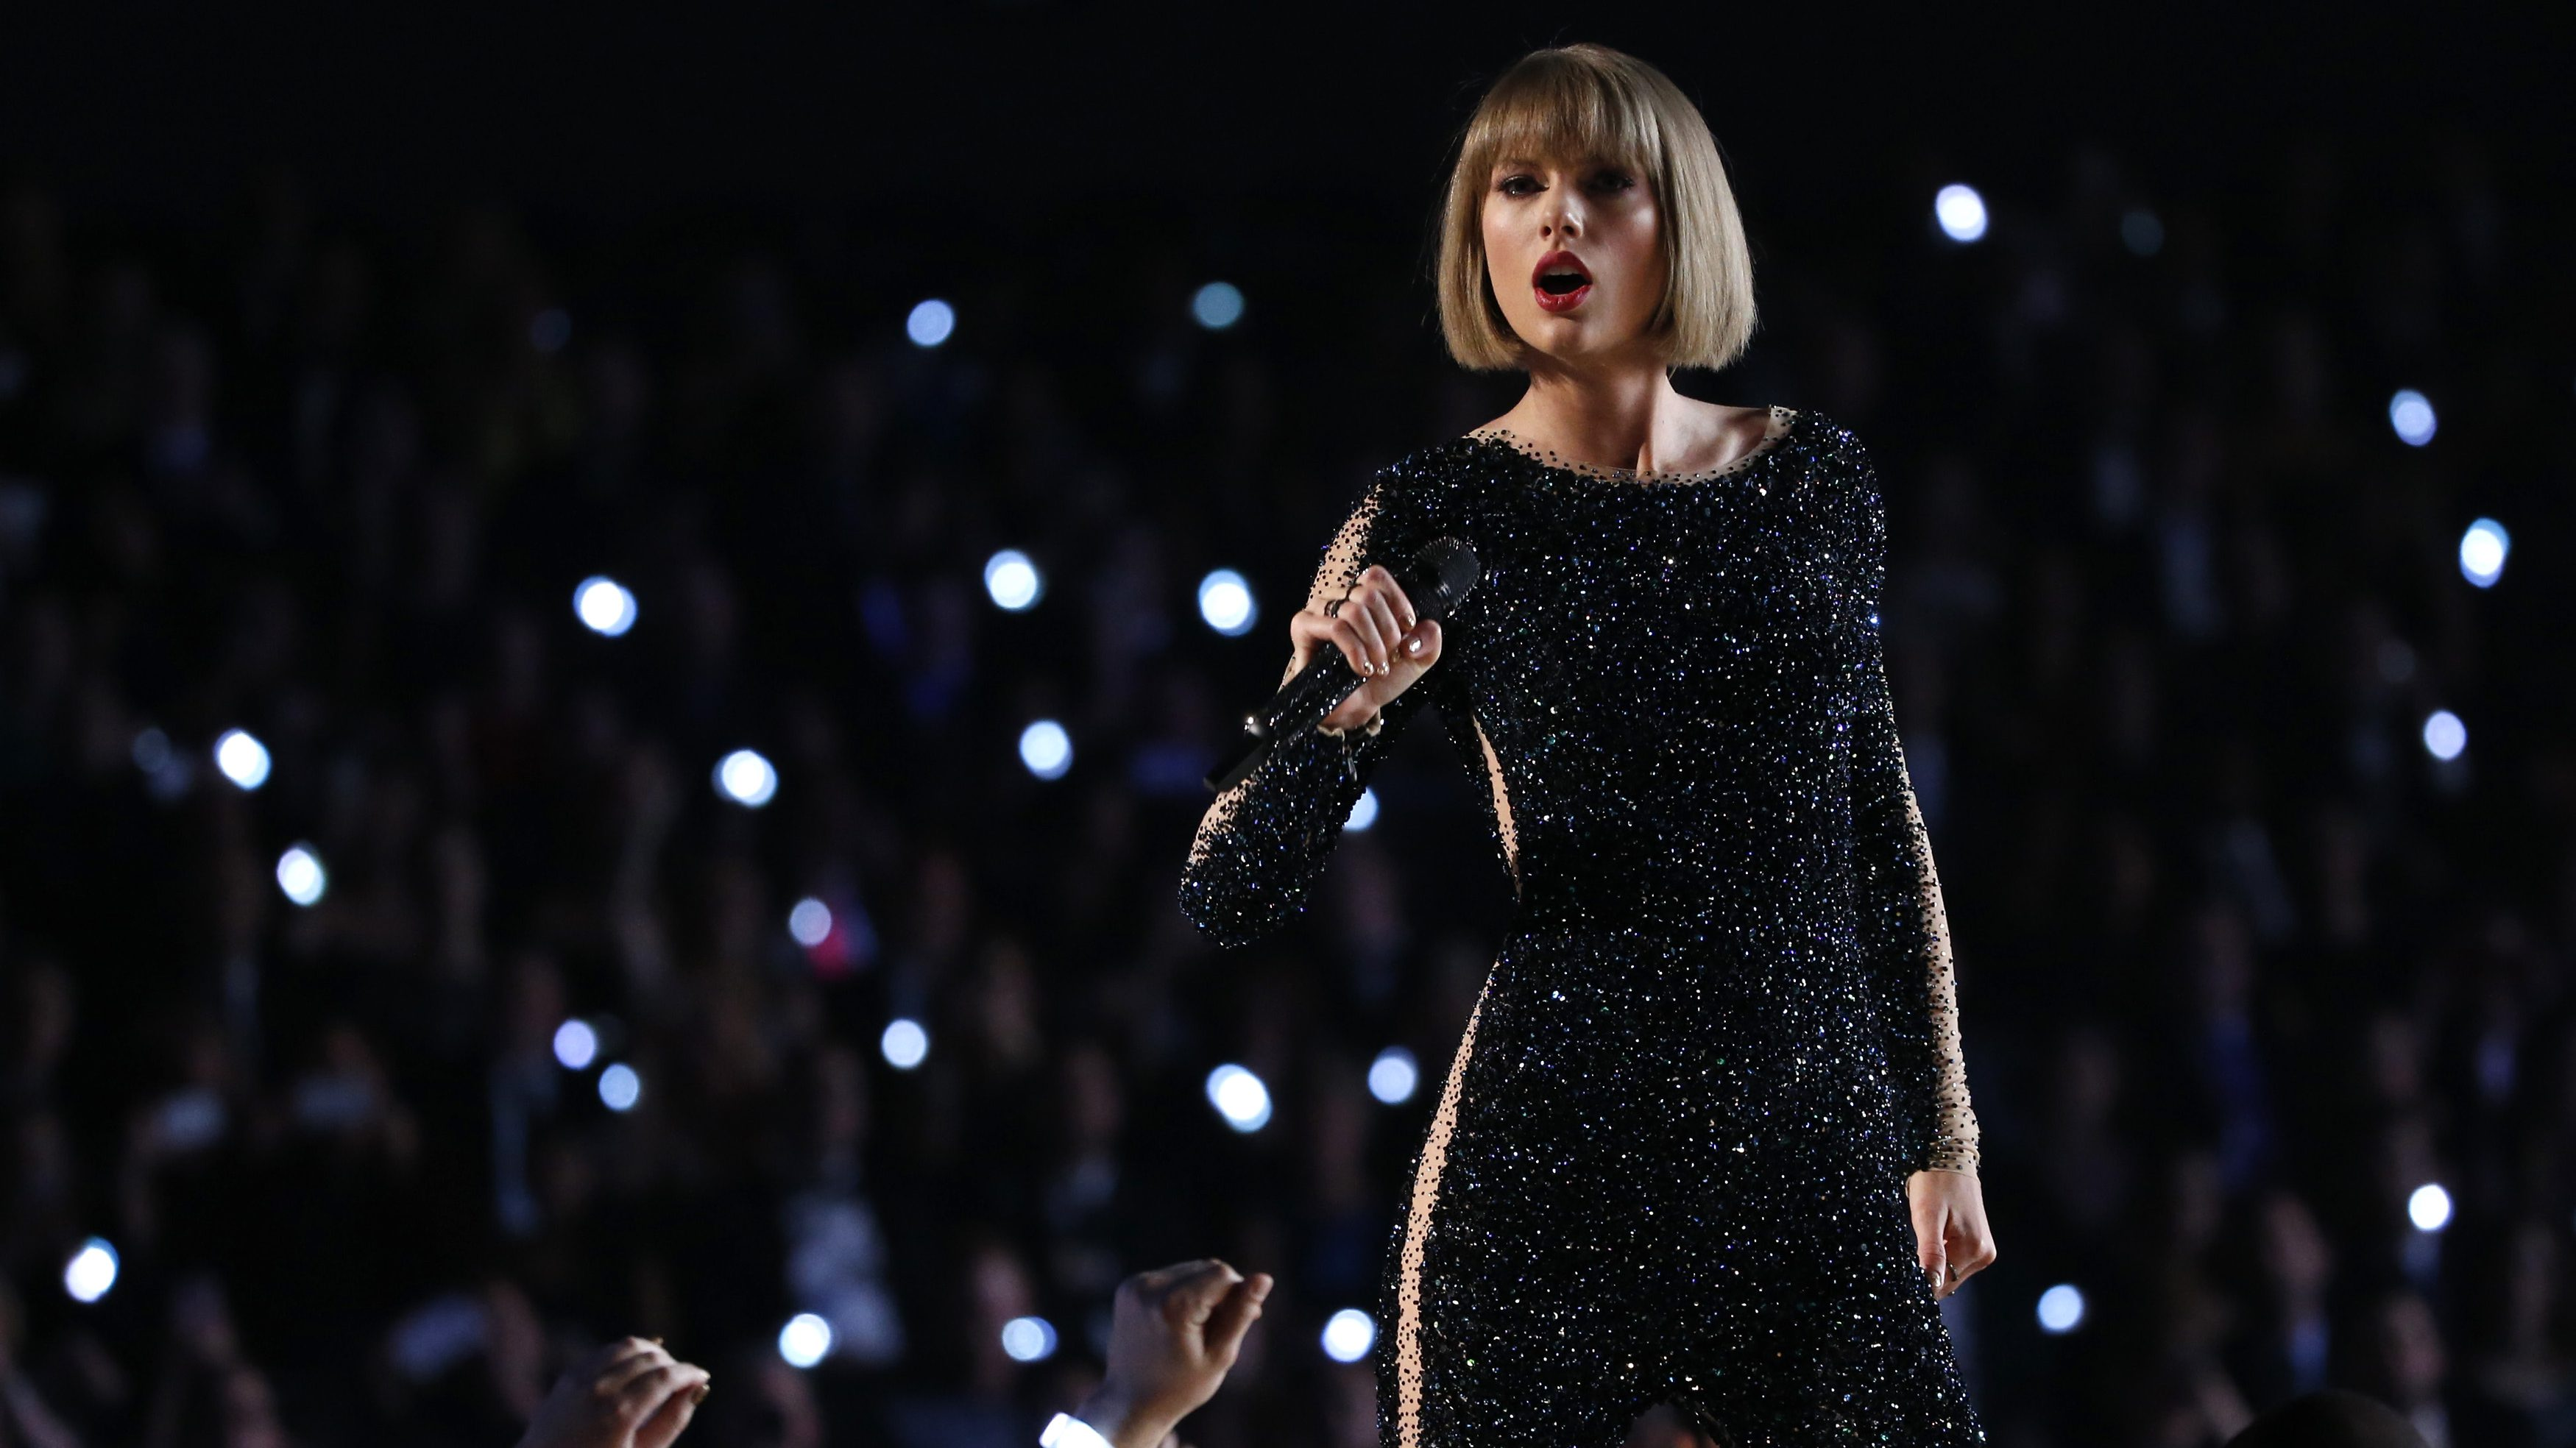 """Taylor Swift performs """"Out of the Woods"""" at the 58th Grammy Awards in Los Angeles"""